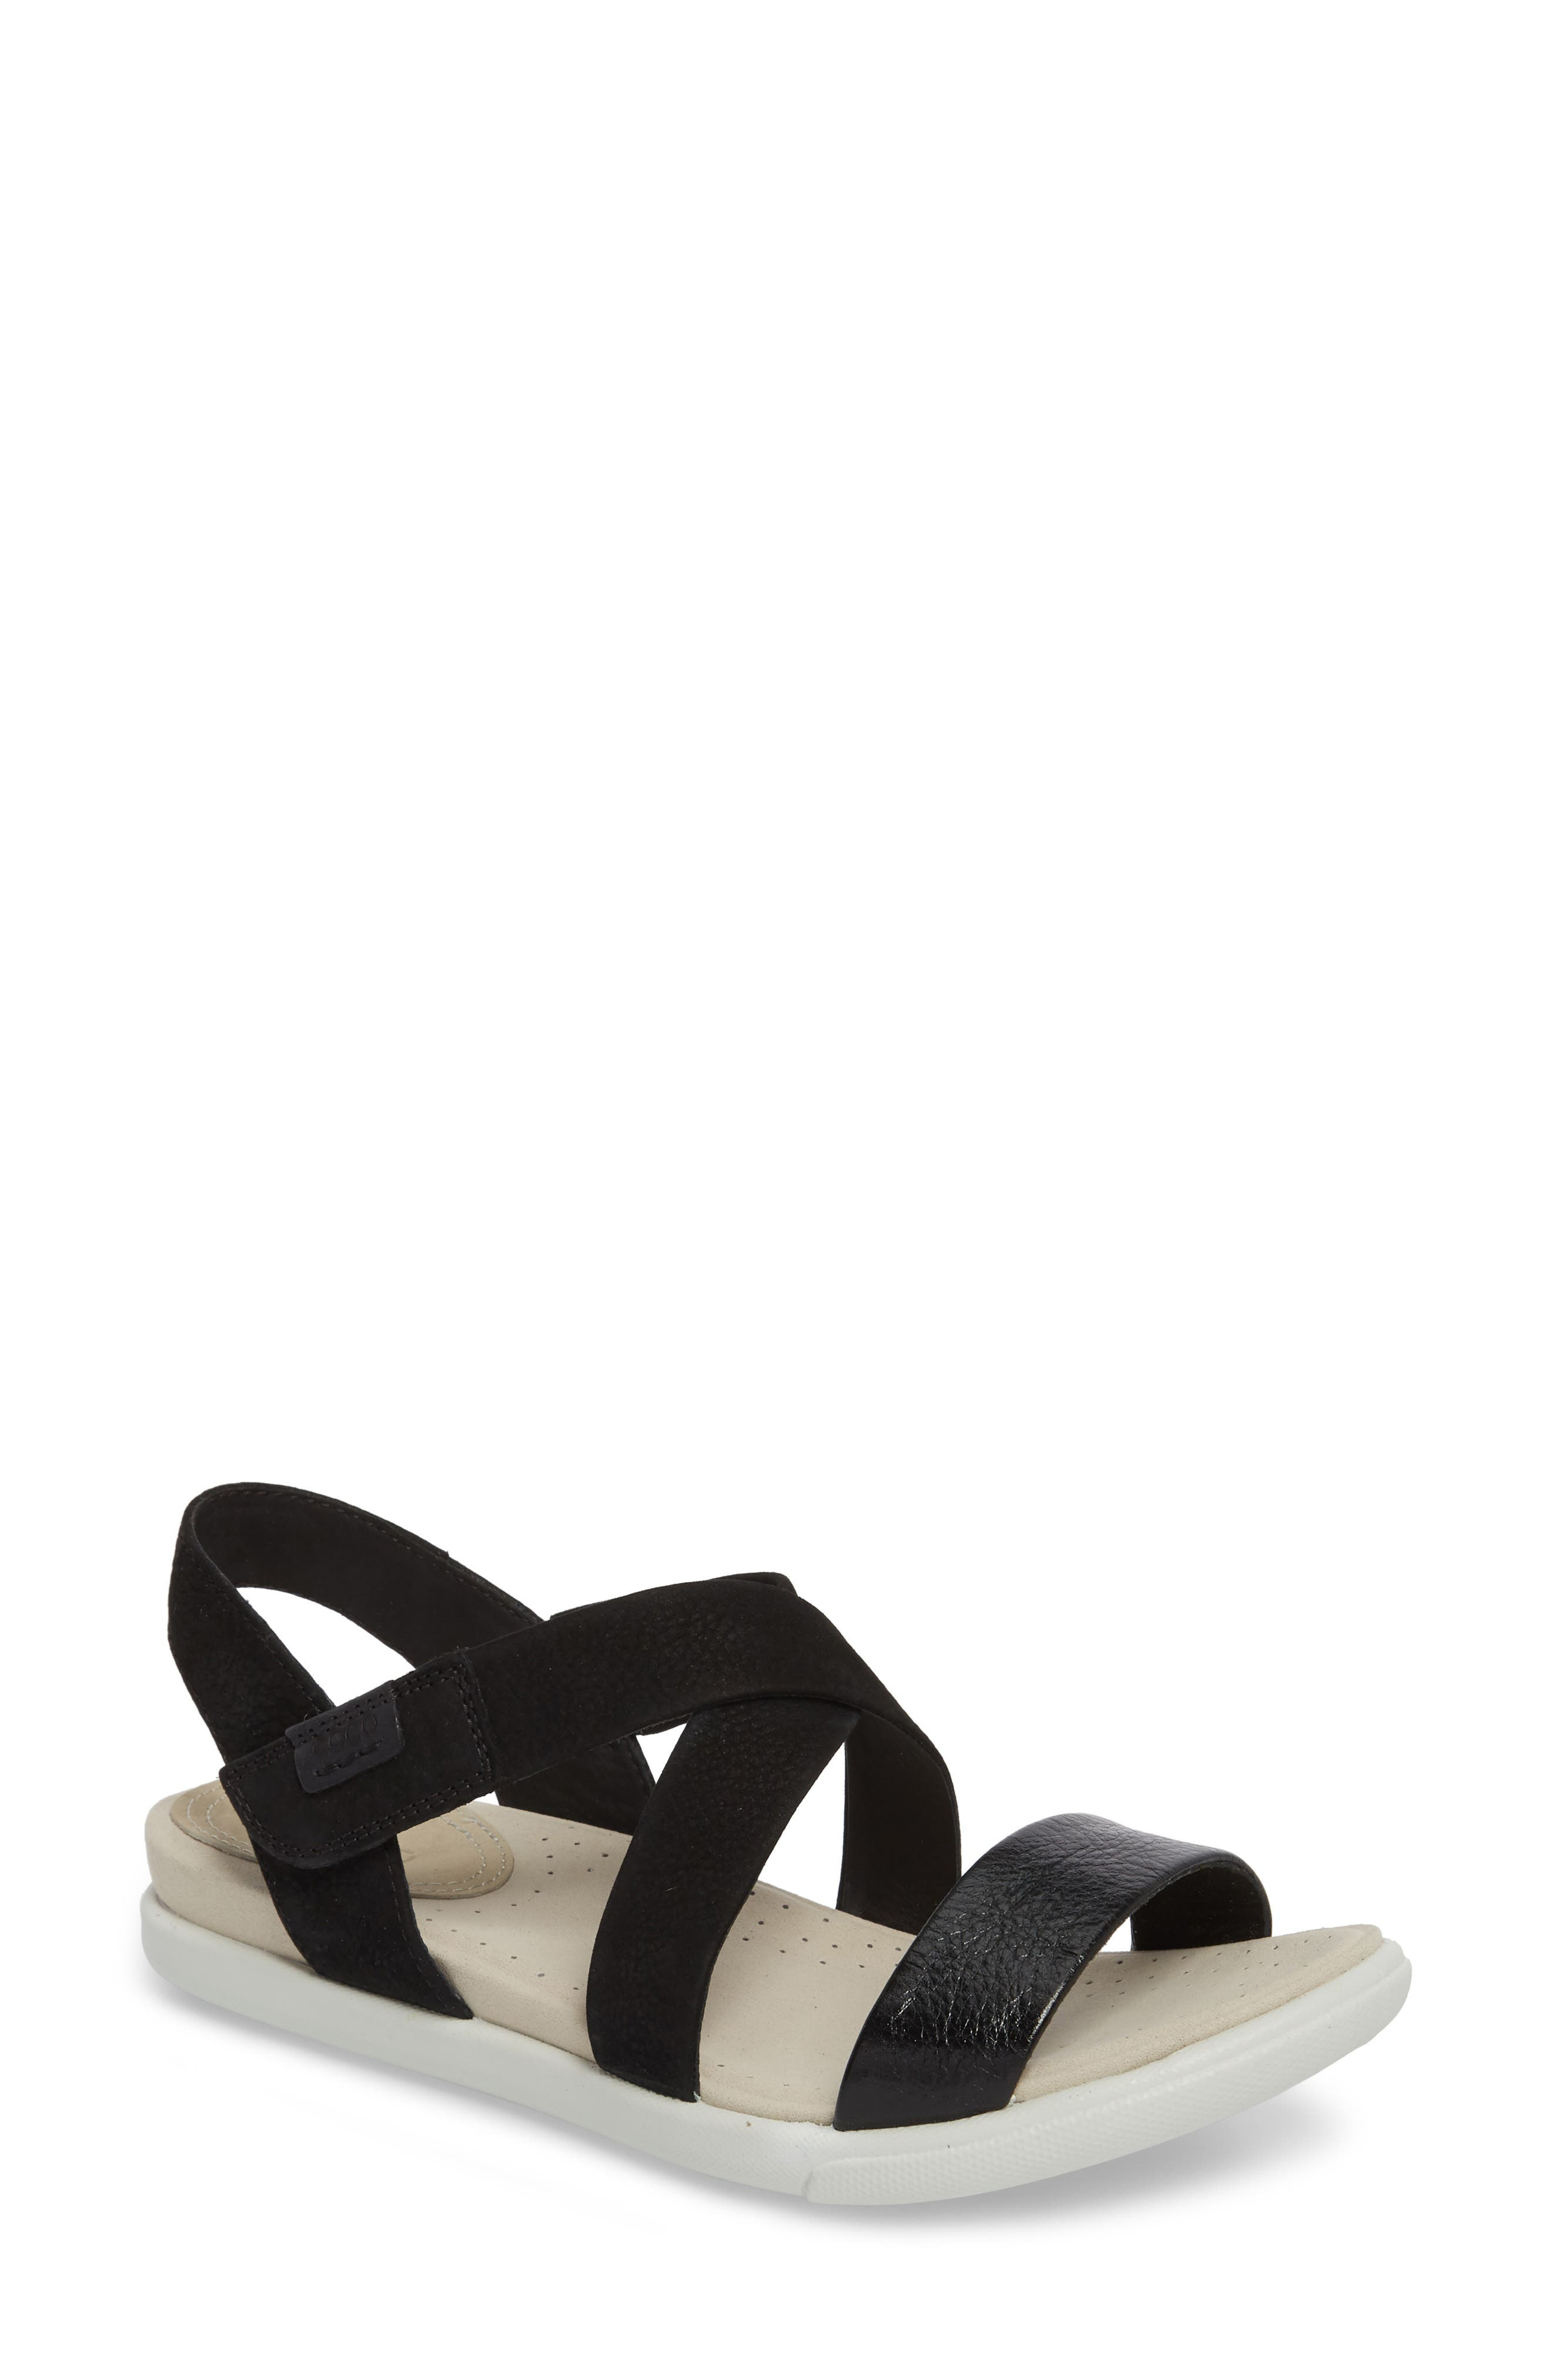 Damara Cross-Strap Sandal,                             Main thumbnail 1, color,